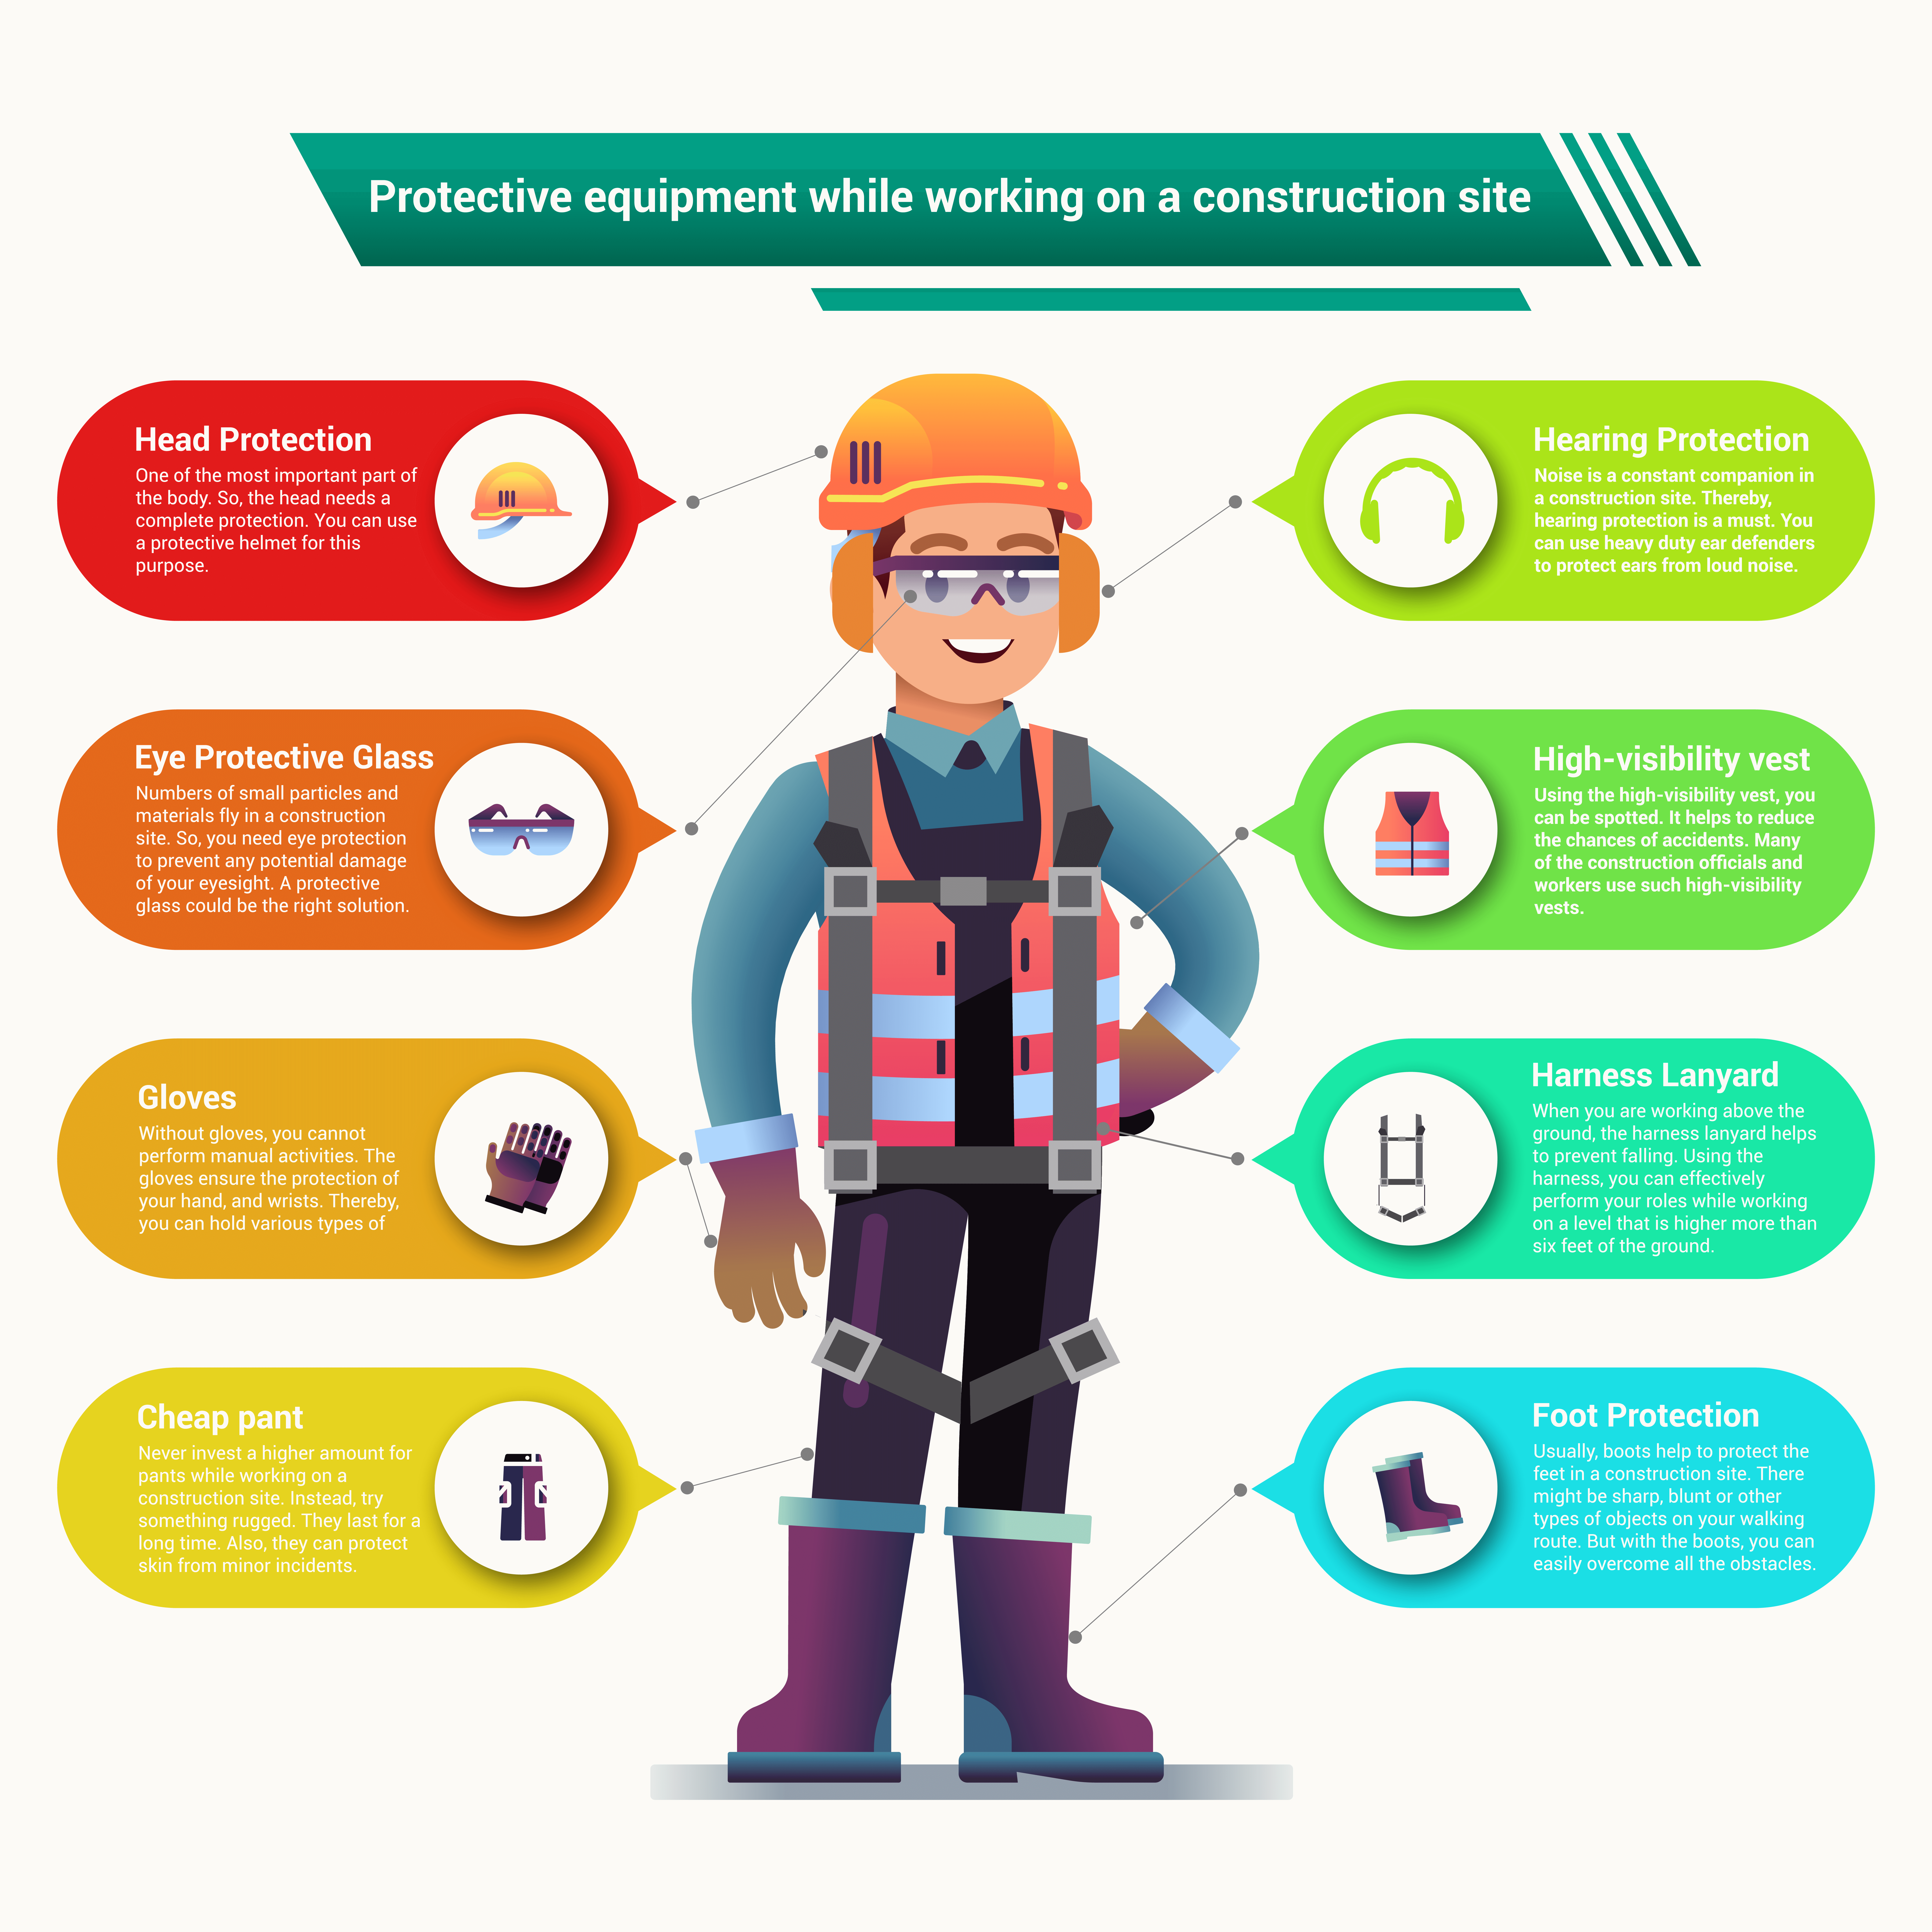 Protective Equipment while working on a construction site